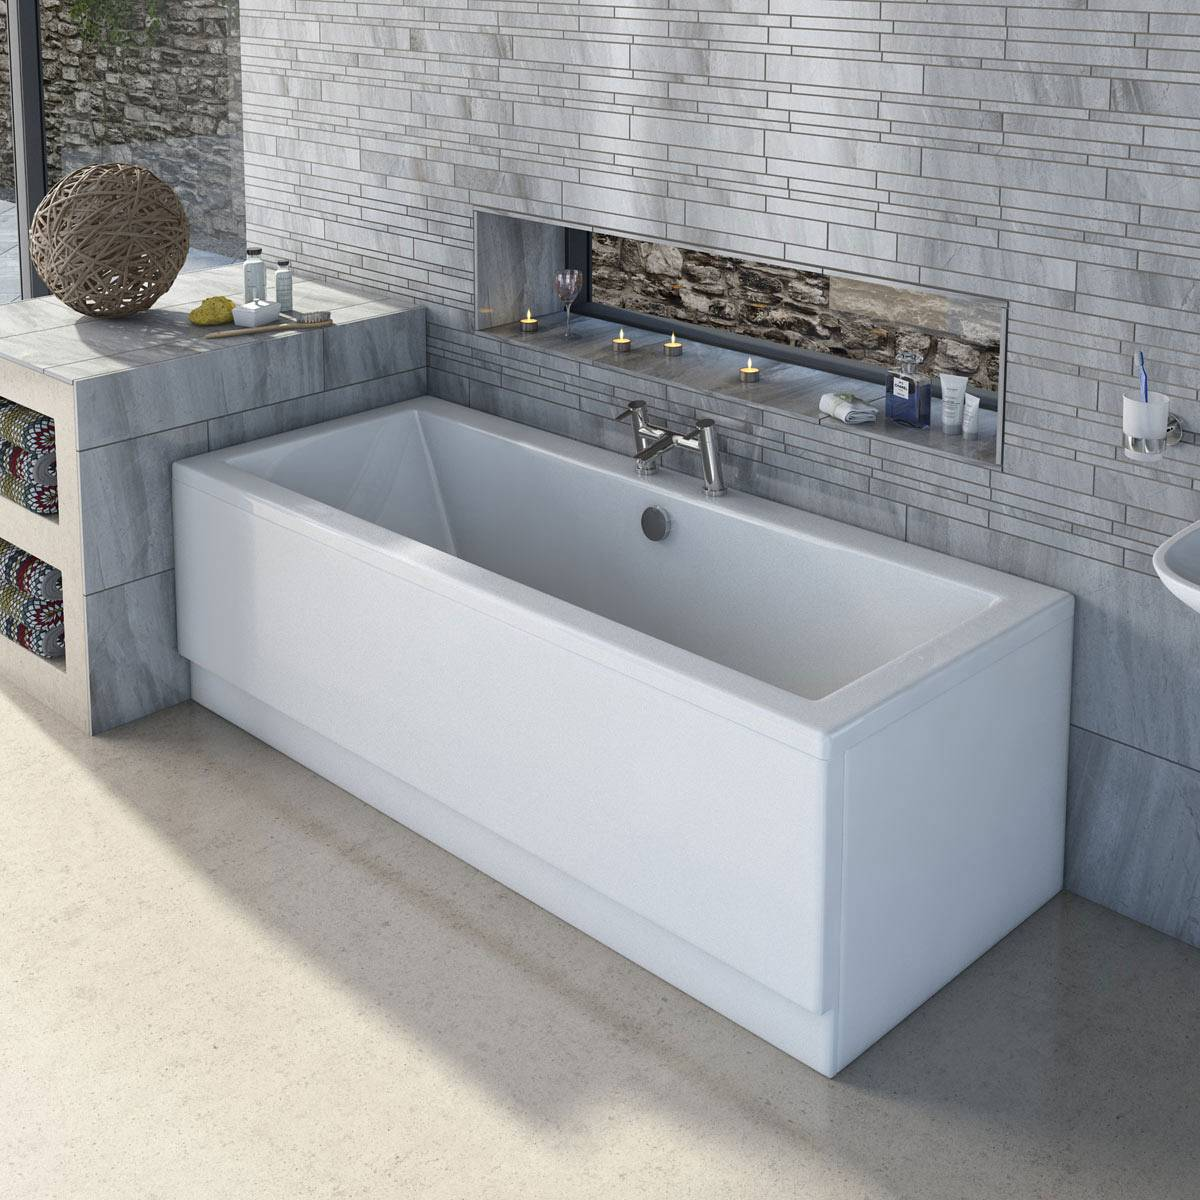 Bathroom sinks with options for everyone - Chelsea Bath